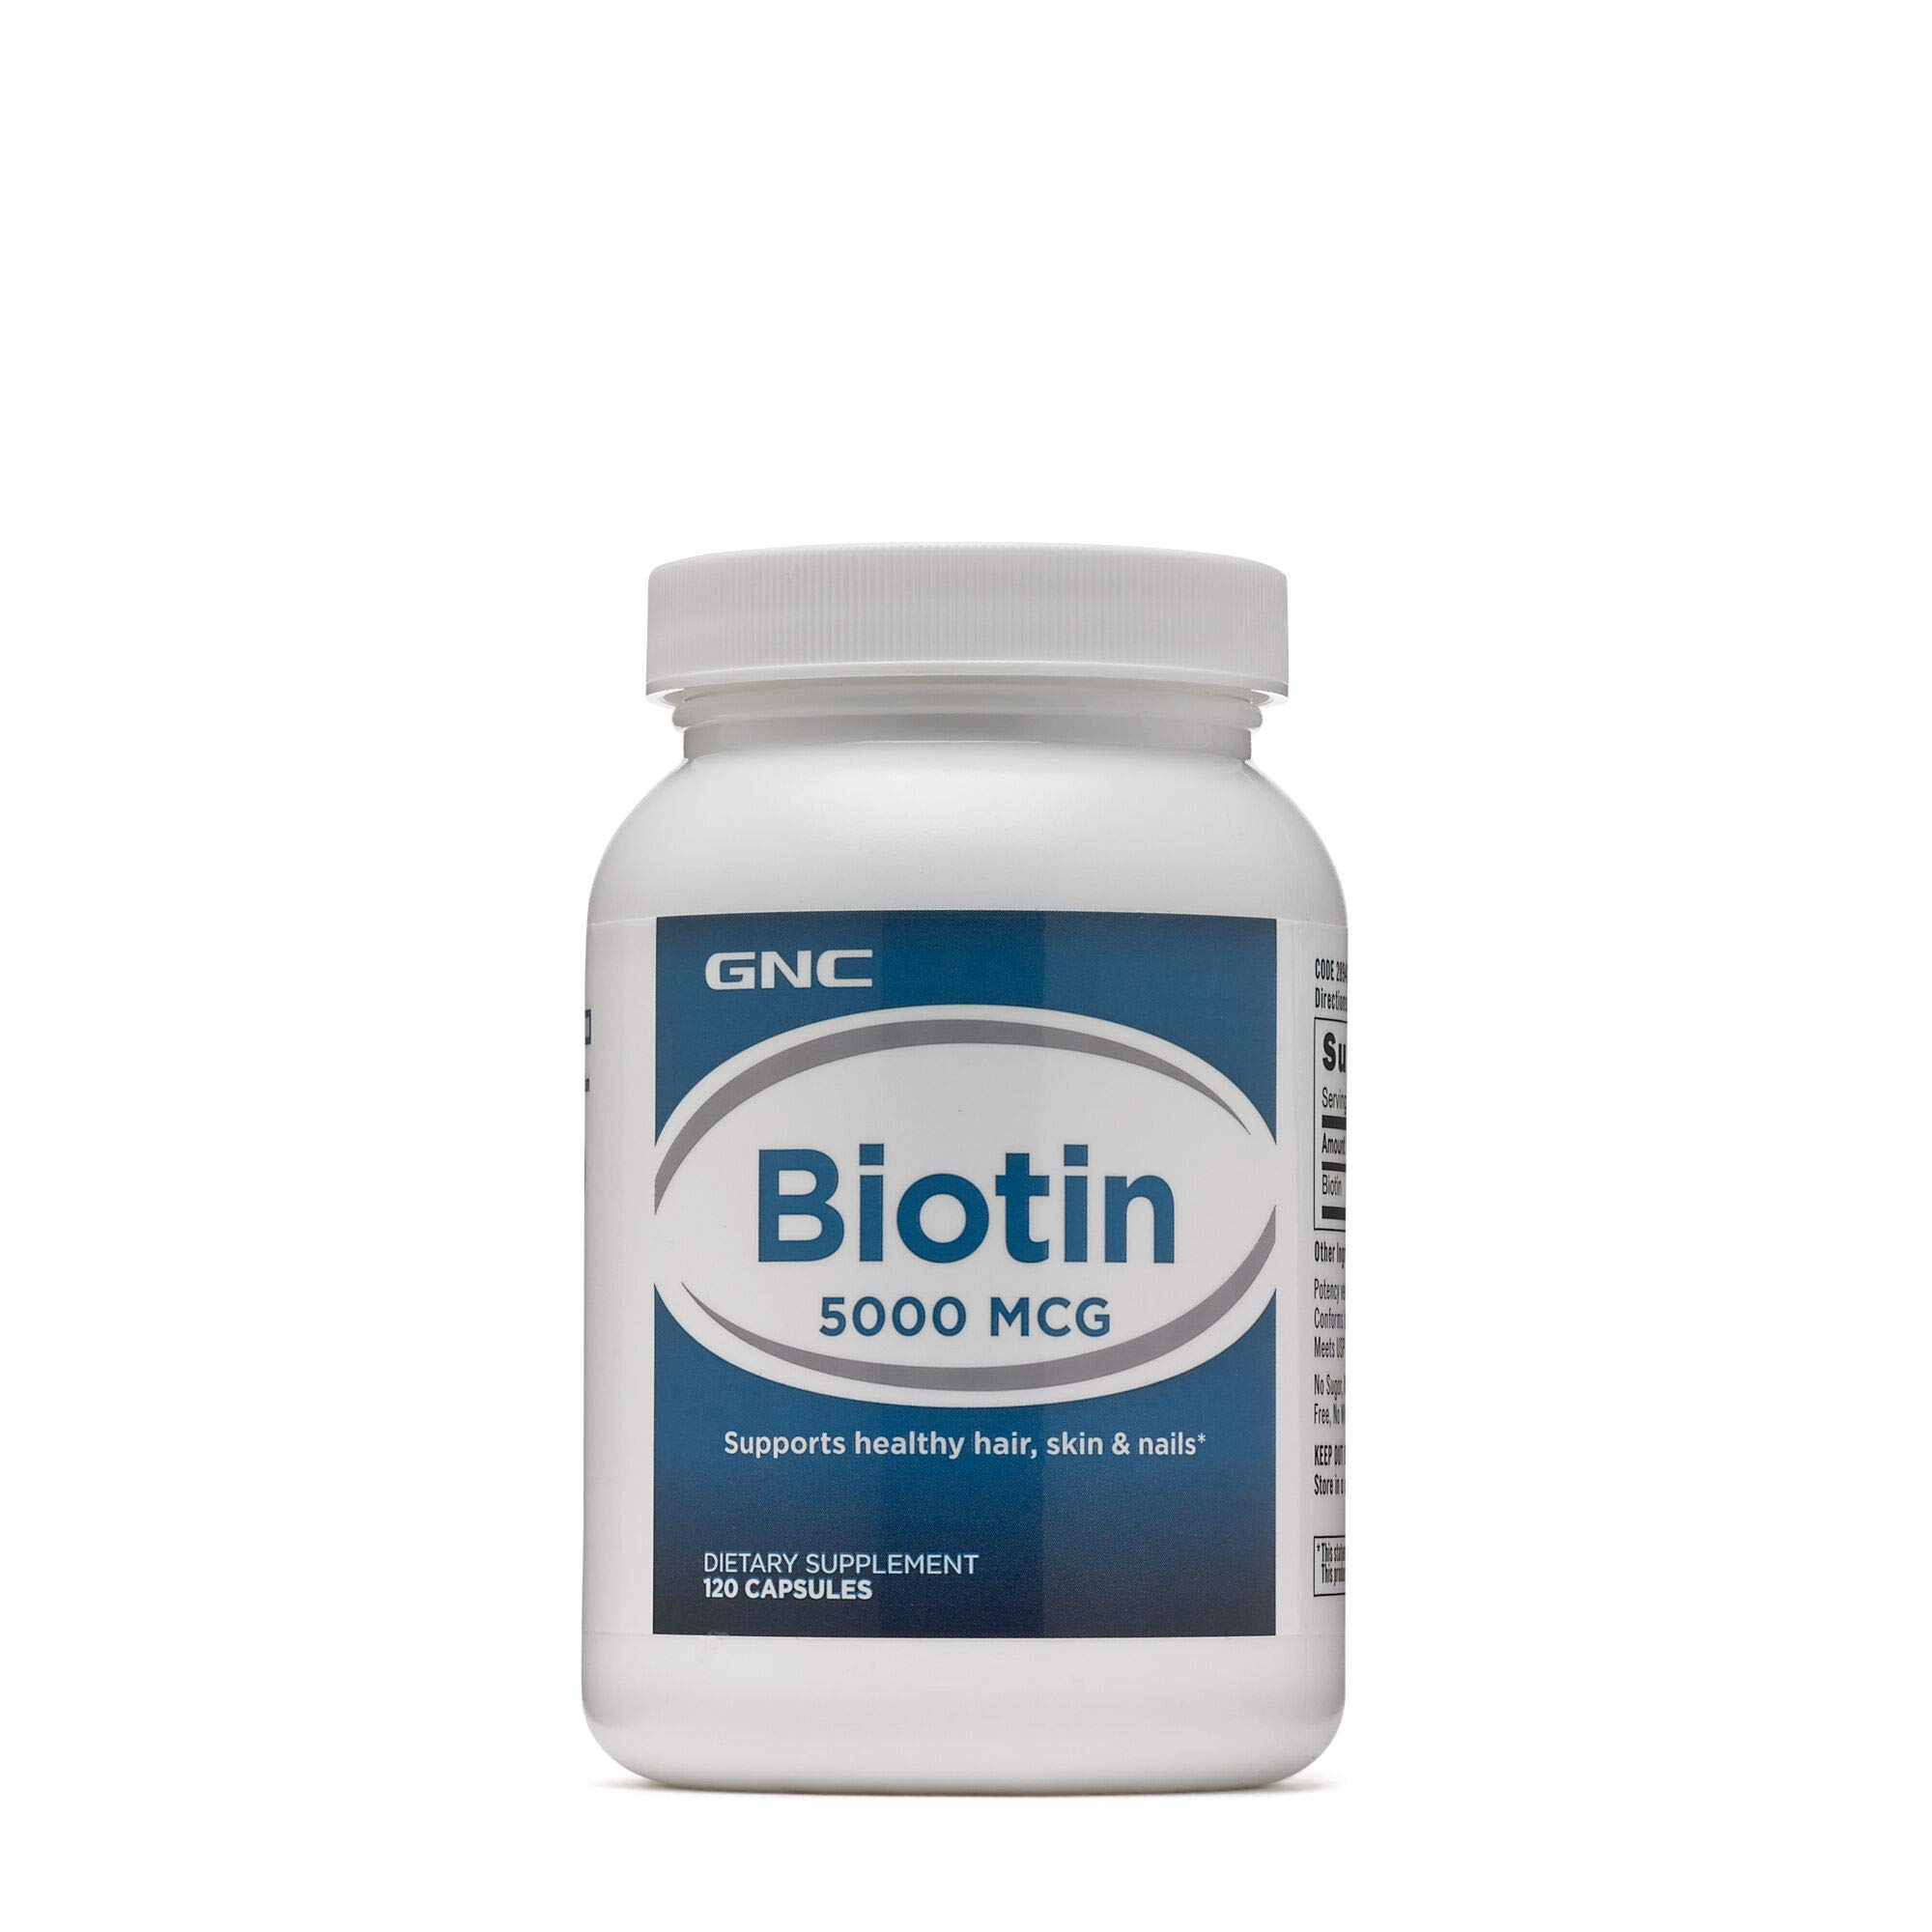 GNC Biotin 5000 MCG, 240 Capsules, Supports Healthy Hair, Skin and Nails by GNC